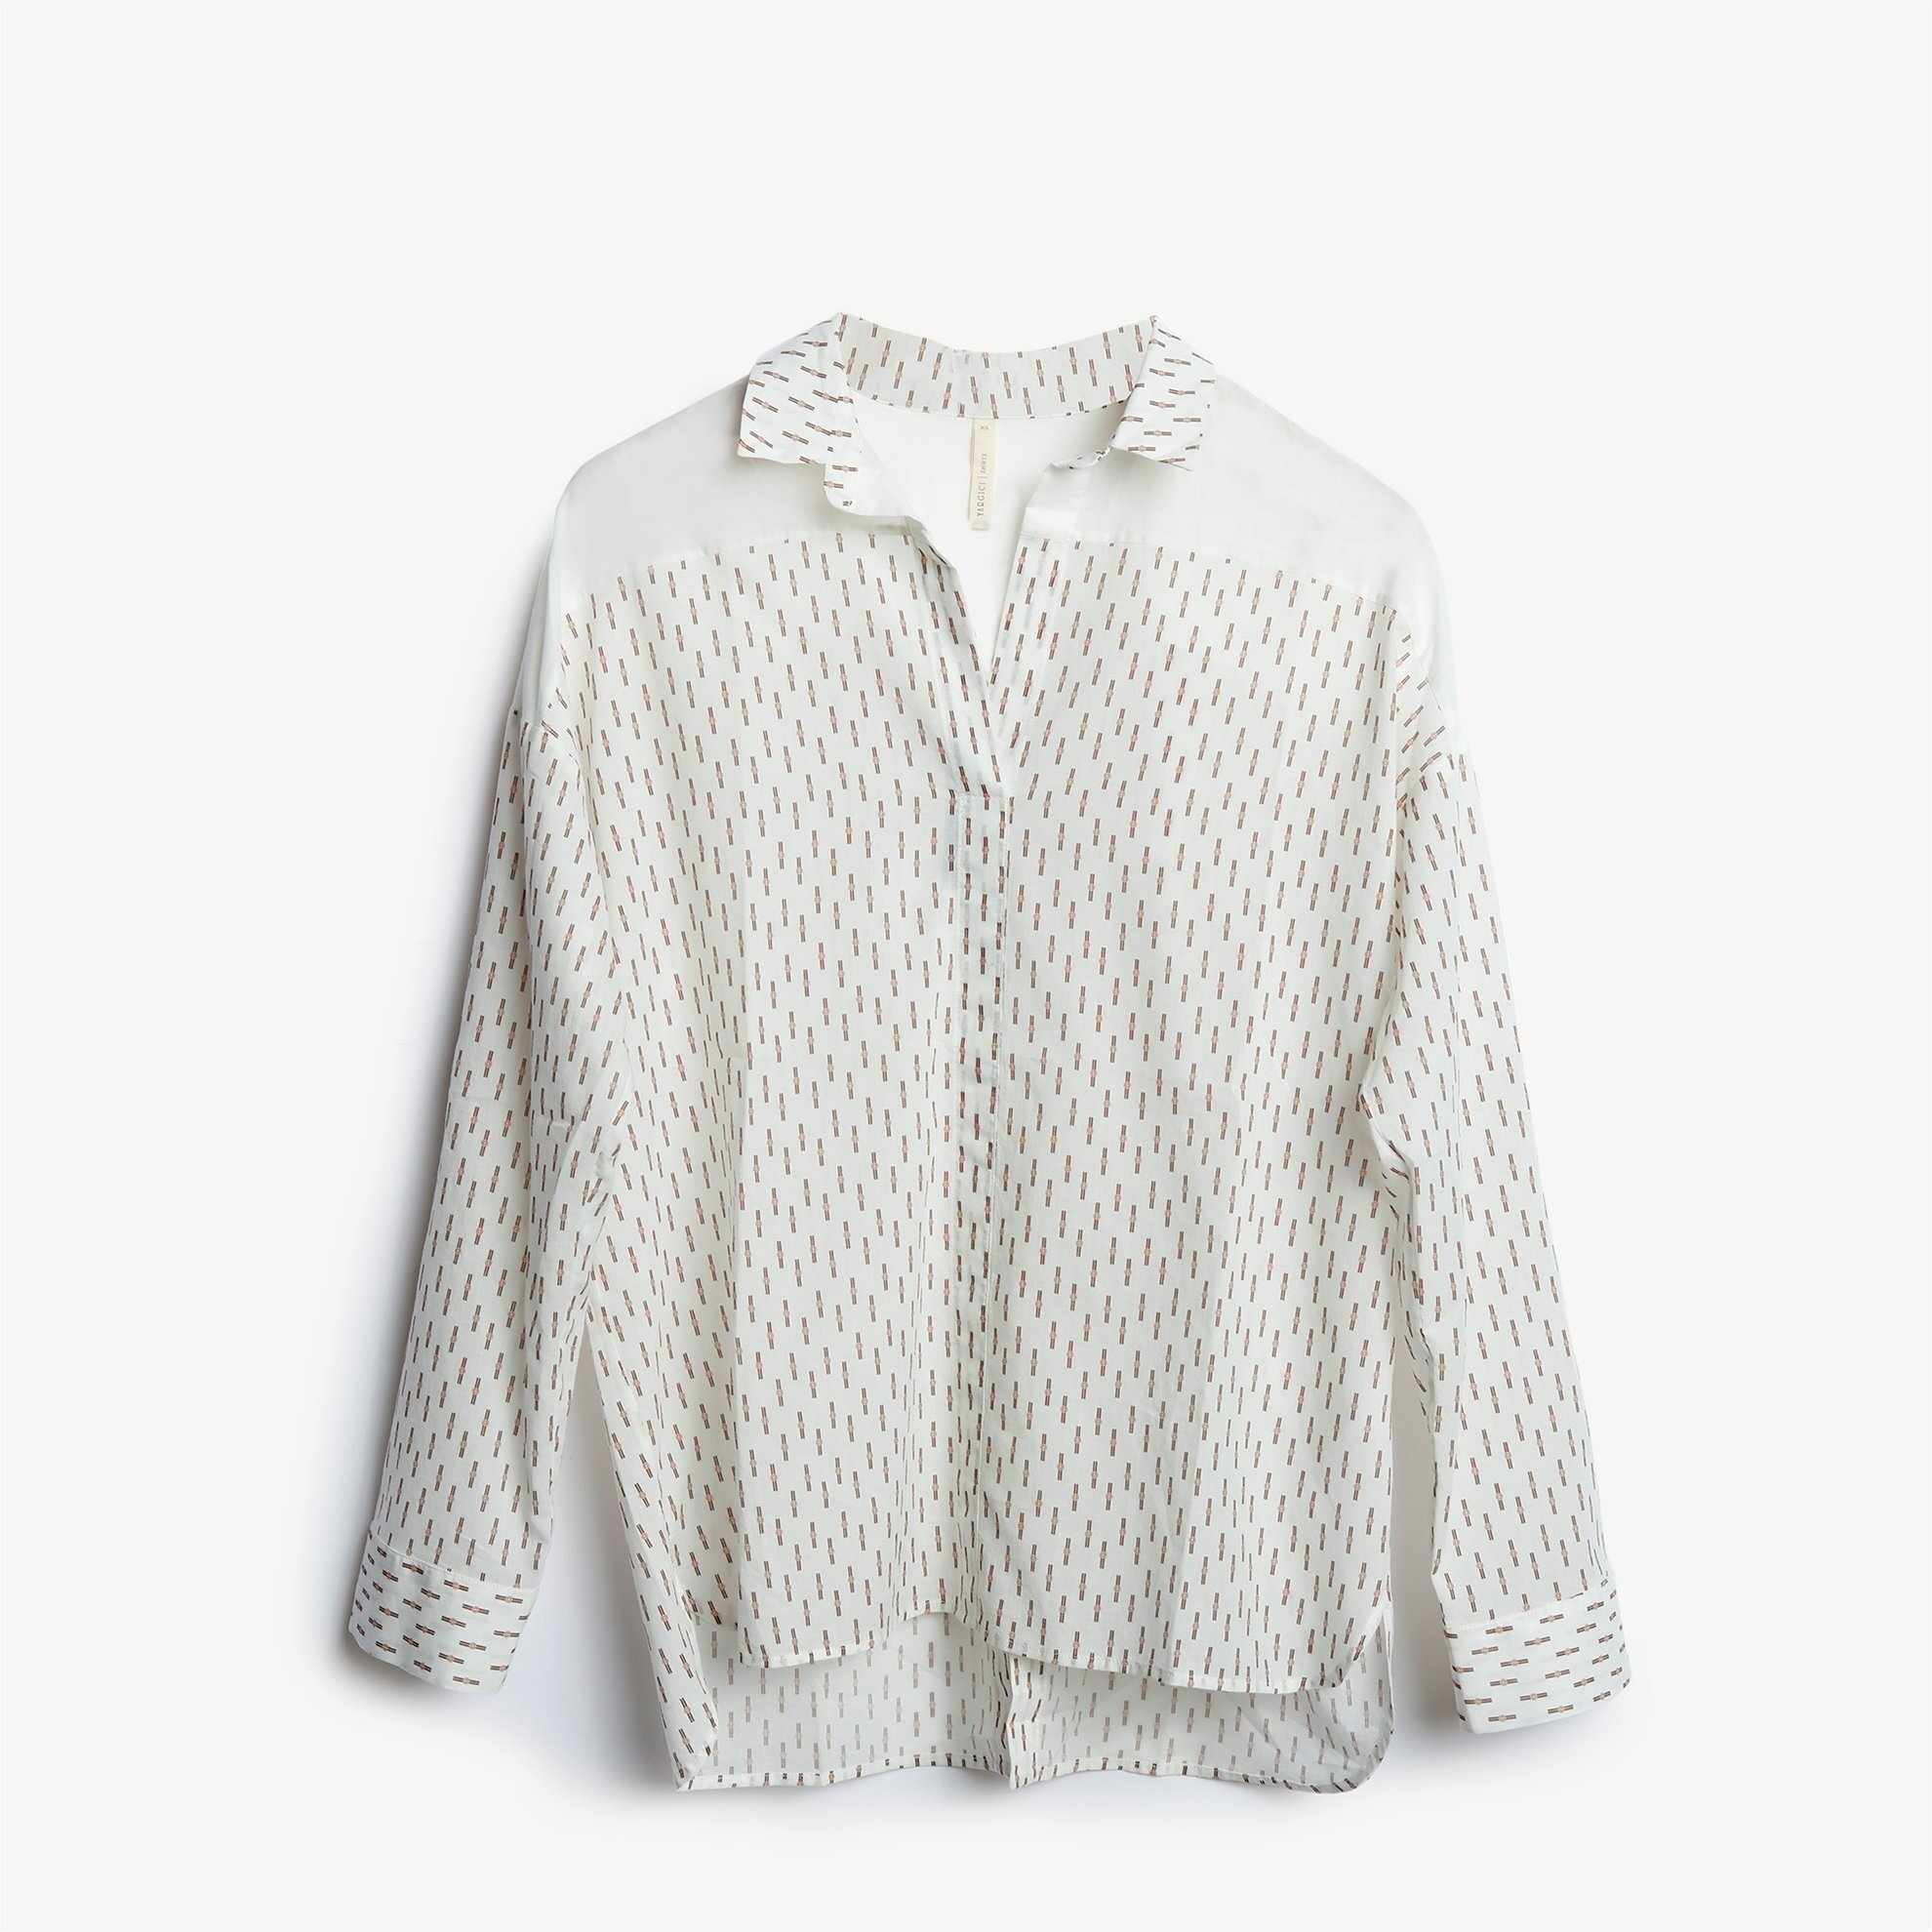 Yoke Detailed Shirt